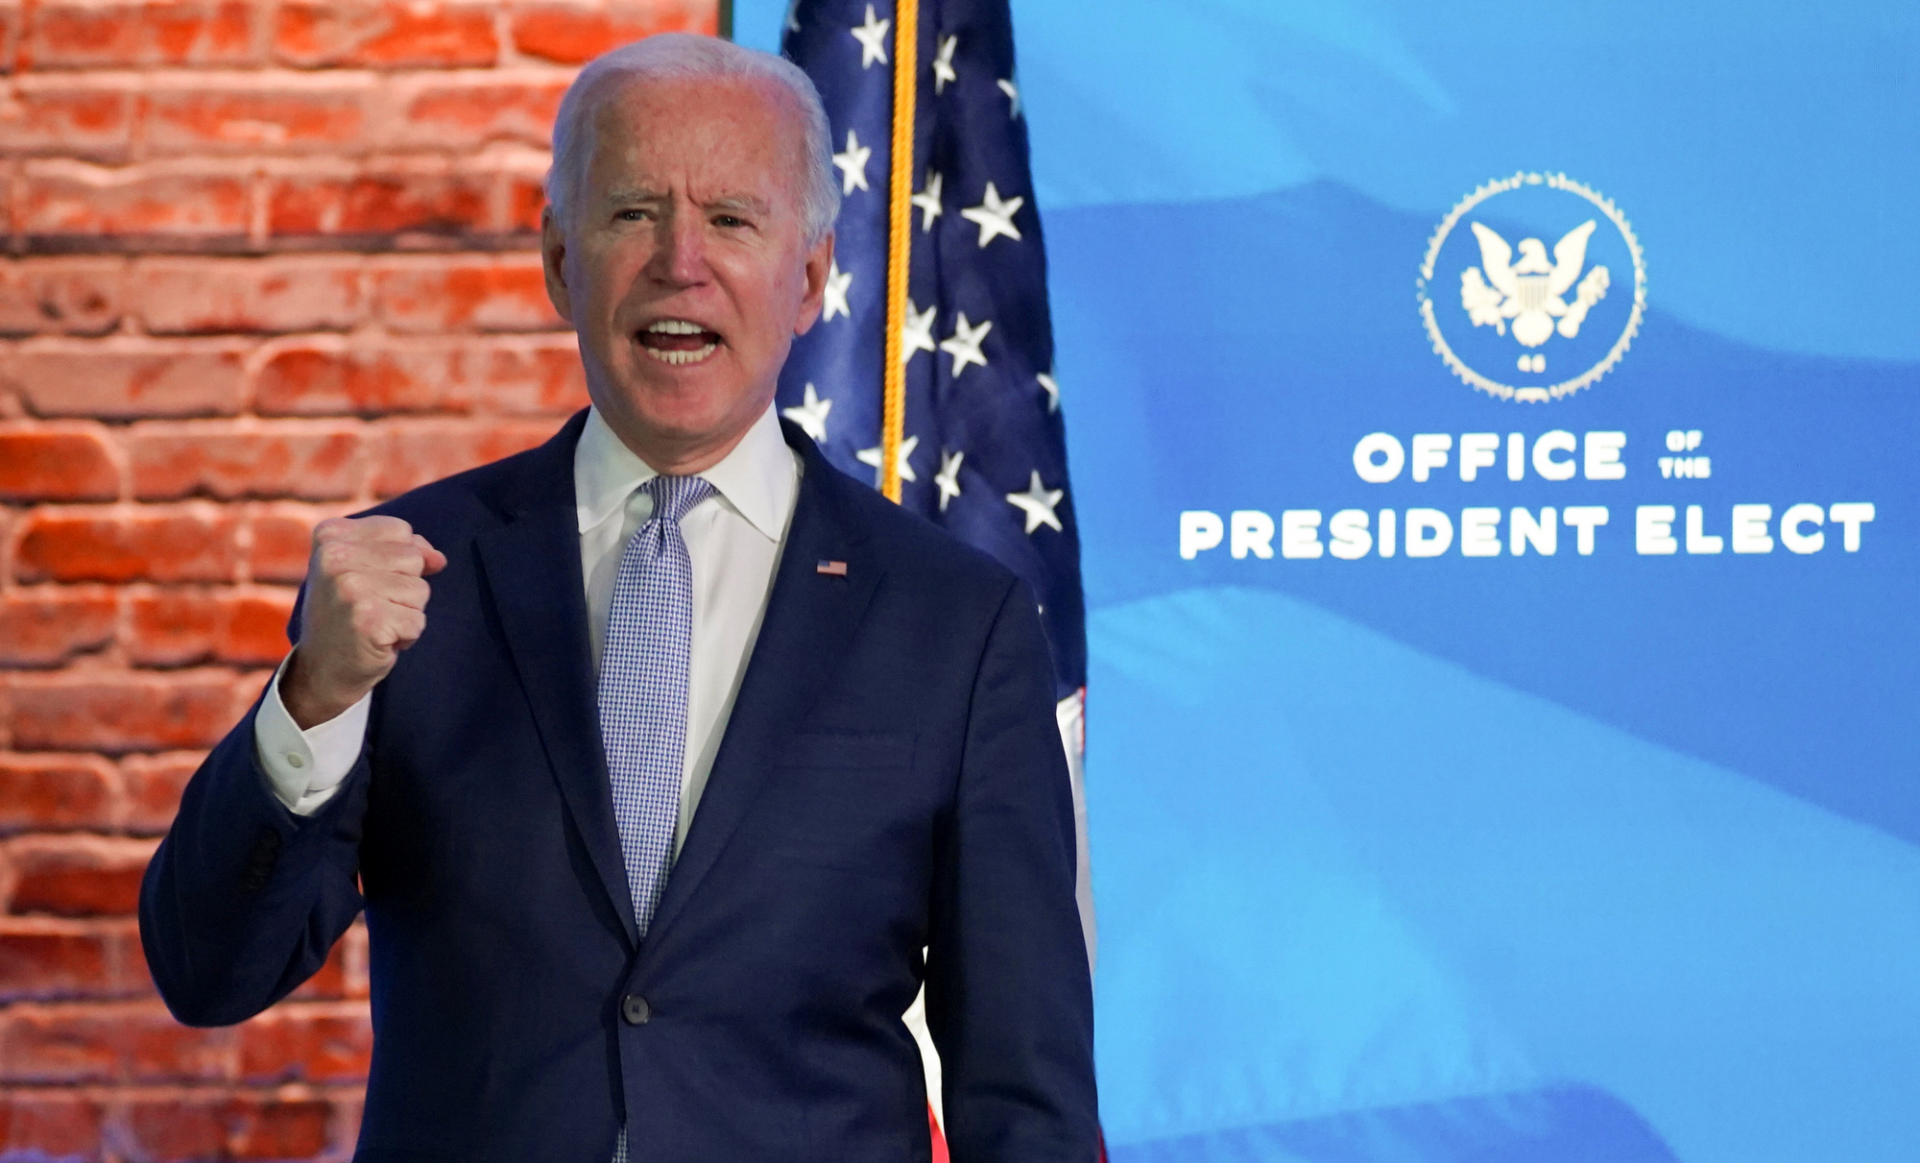 Biden is certified victory by US Congress; Trump pledges 'Orderly Transition' on Jan 20